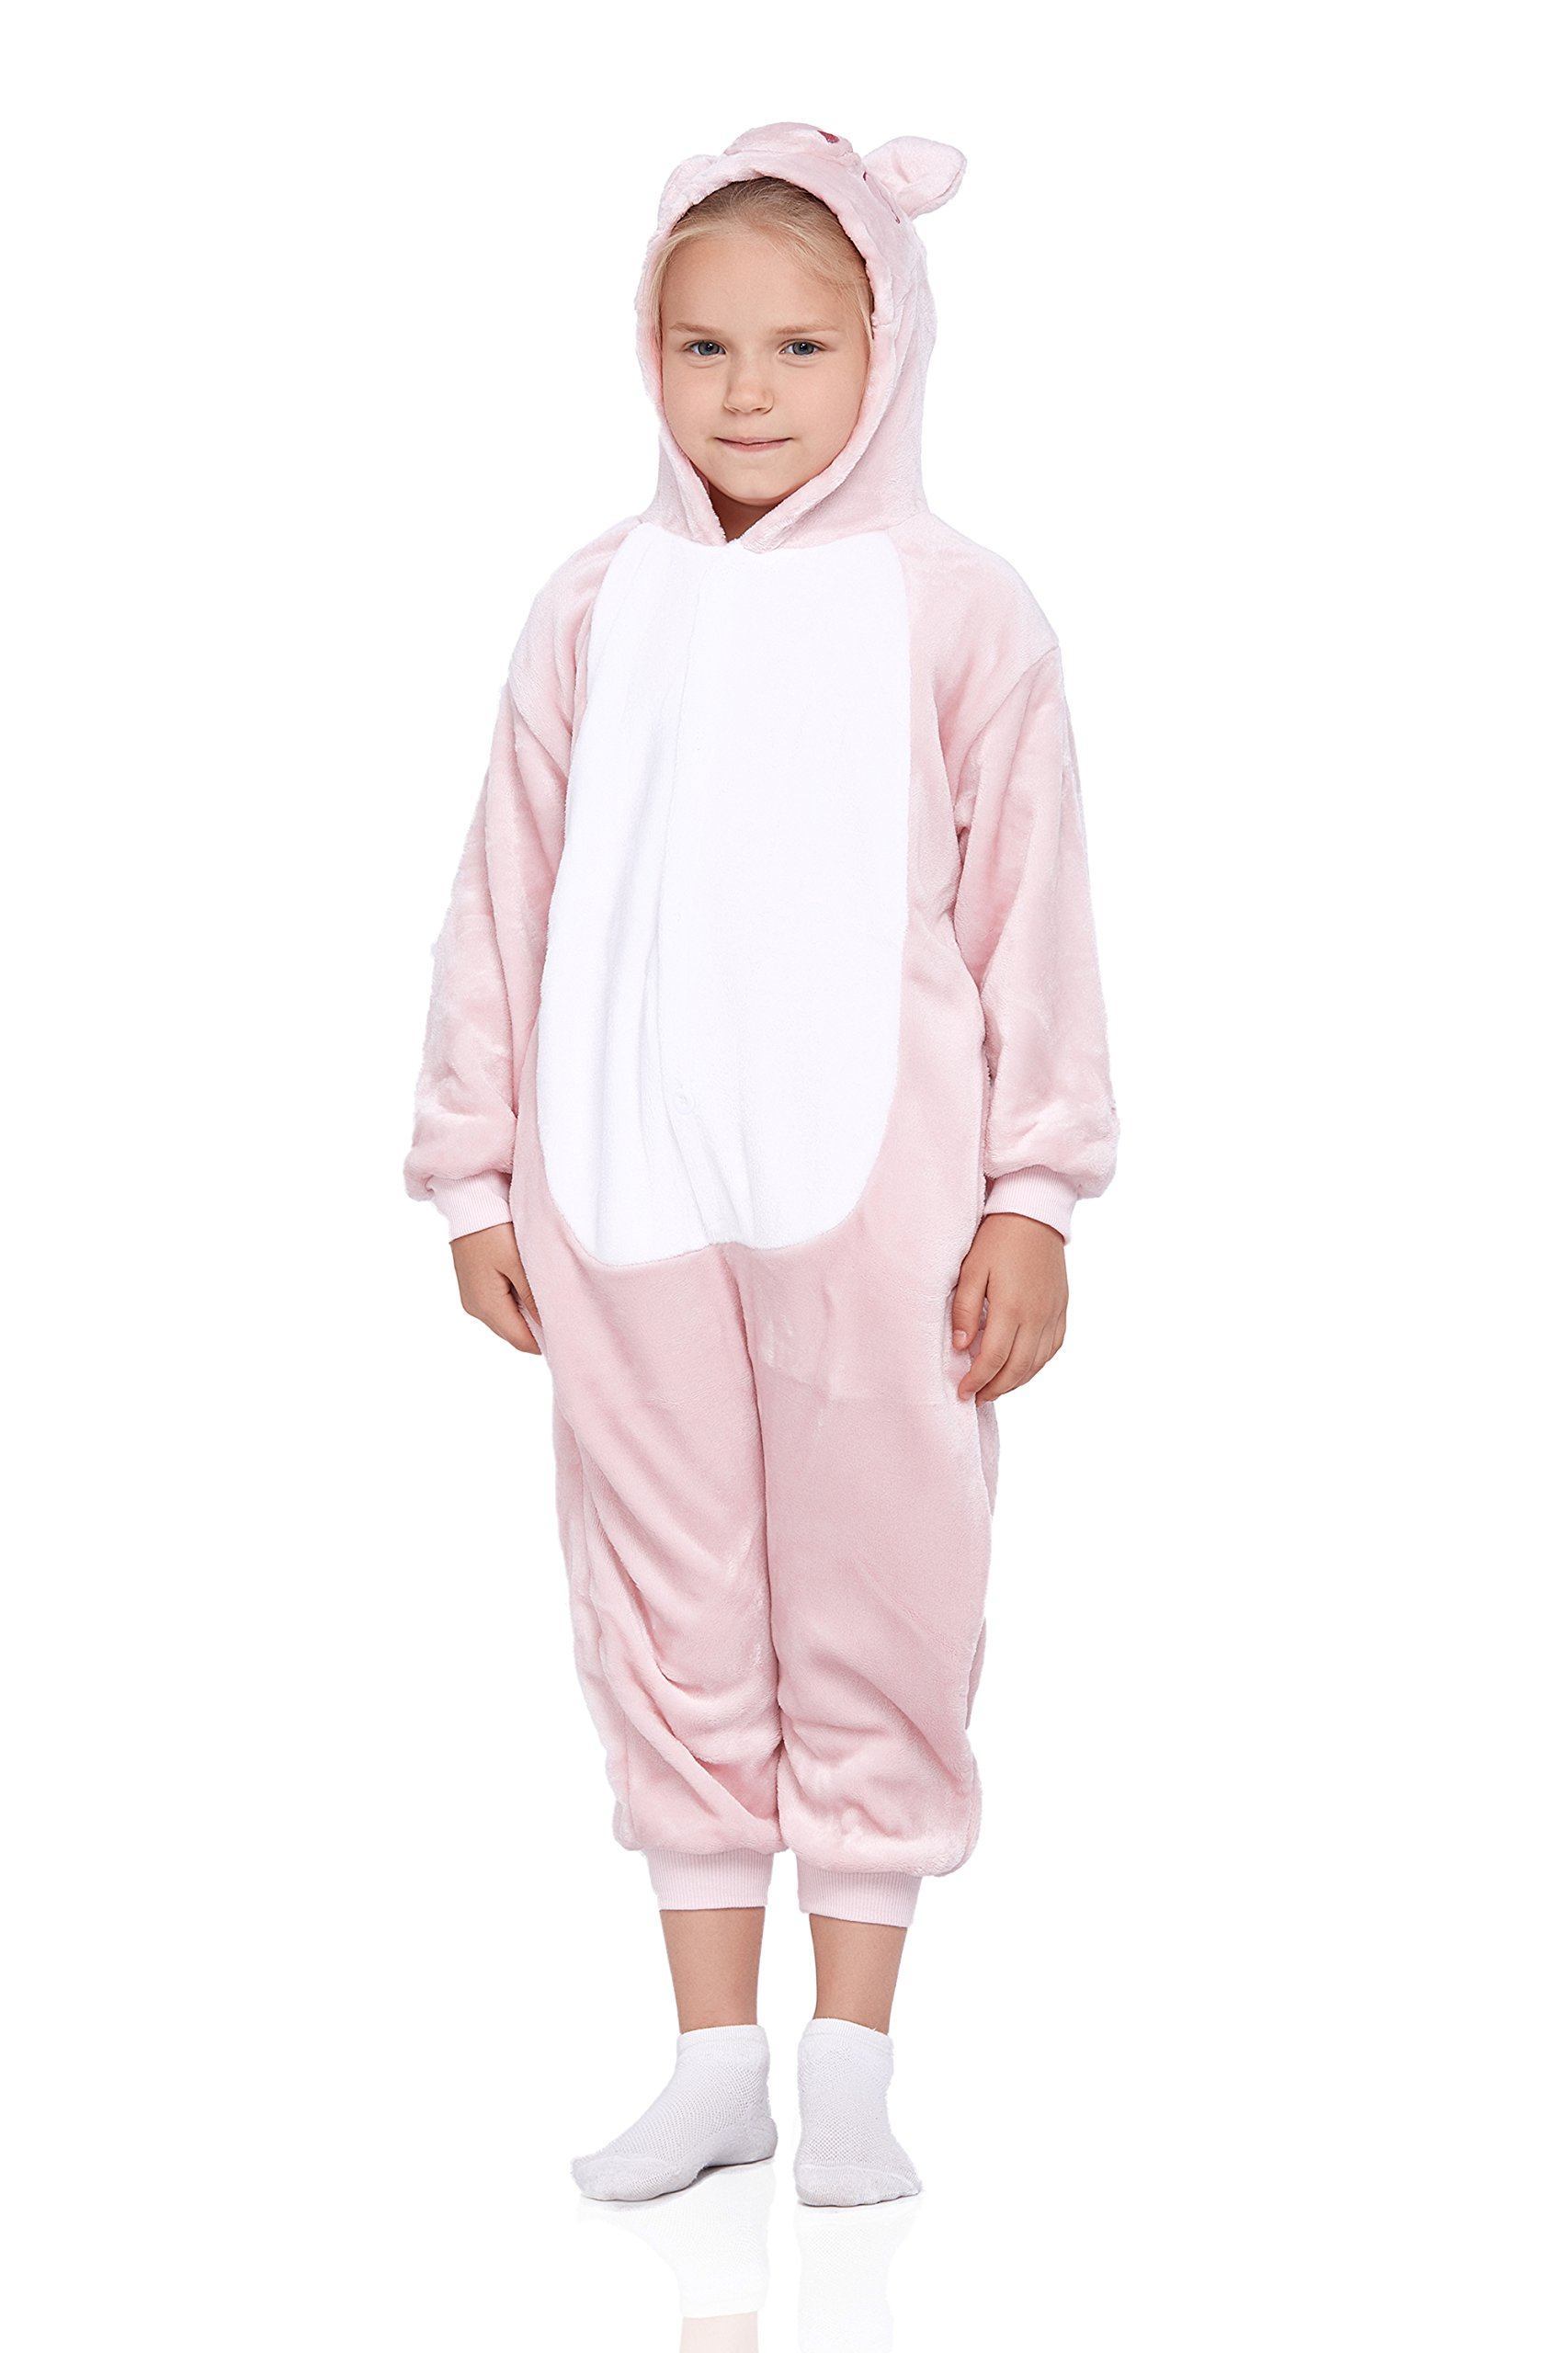 Kids Piglet Pajamas Animal Onesie Kigurumi Plush Soft One Piece Cosplay Costume (Large, Cream pink)